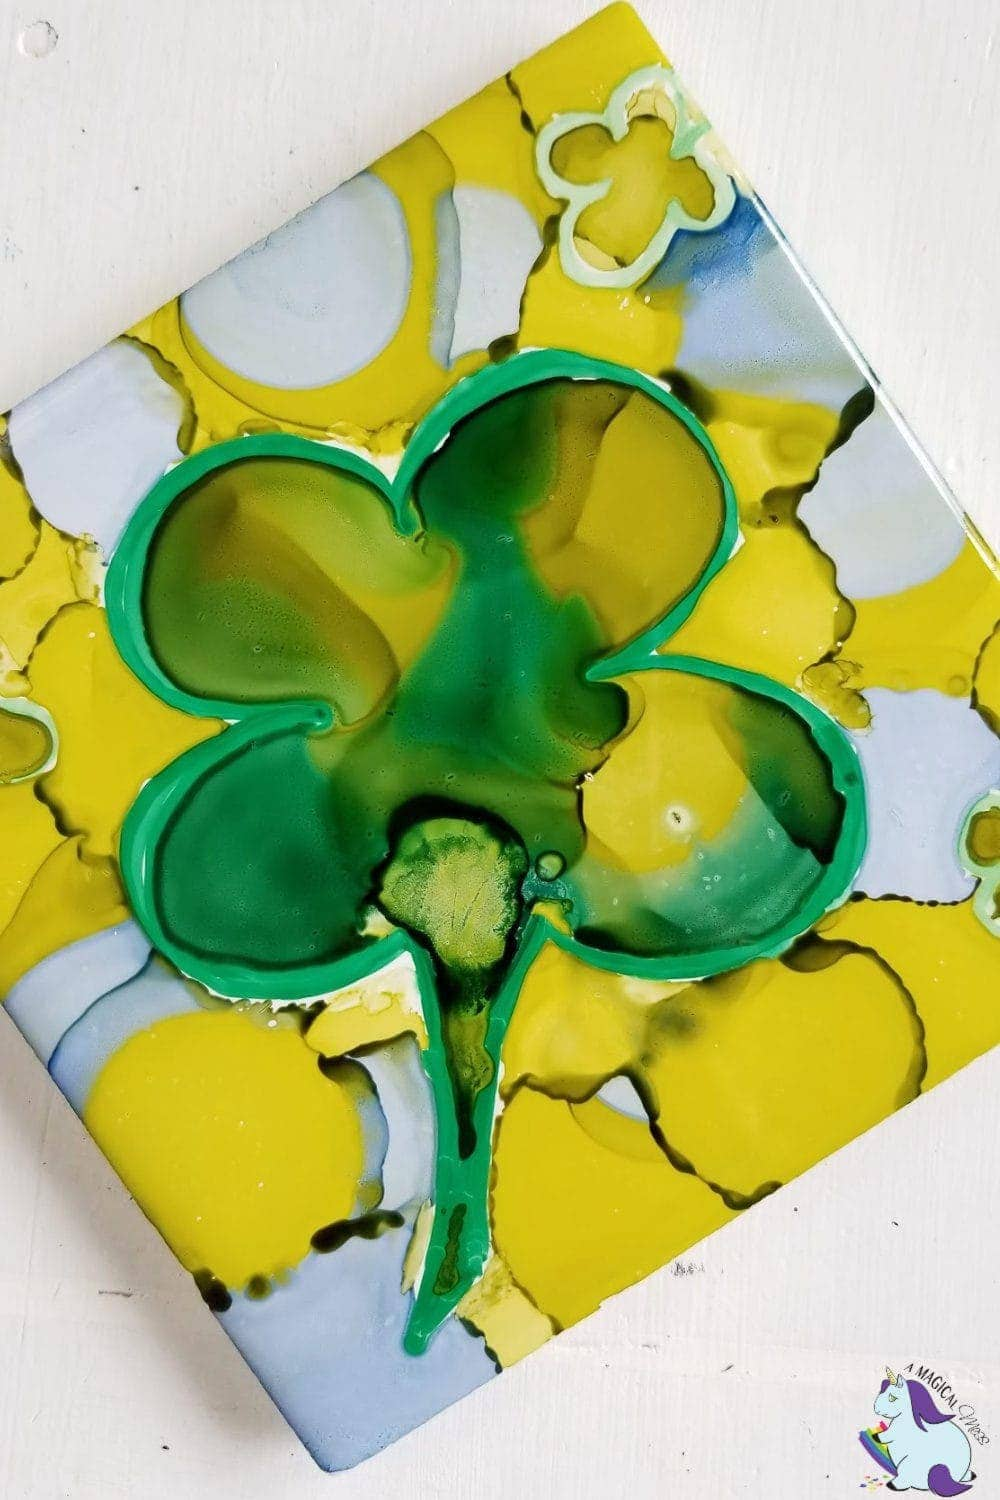 abstract four leaf clover in alcohol ink on tile